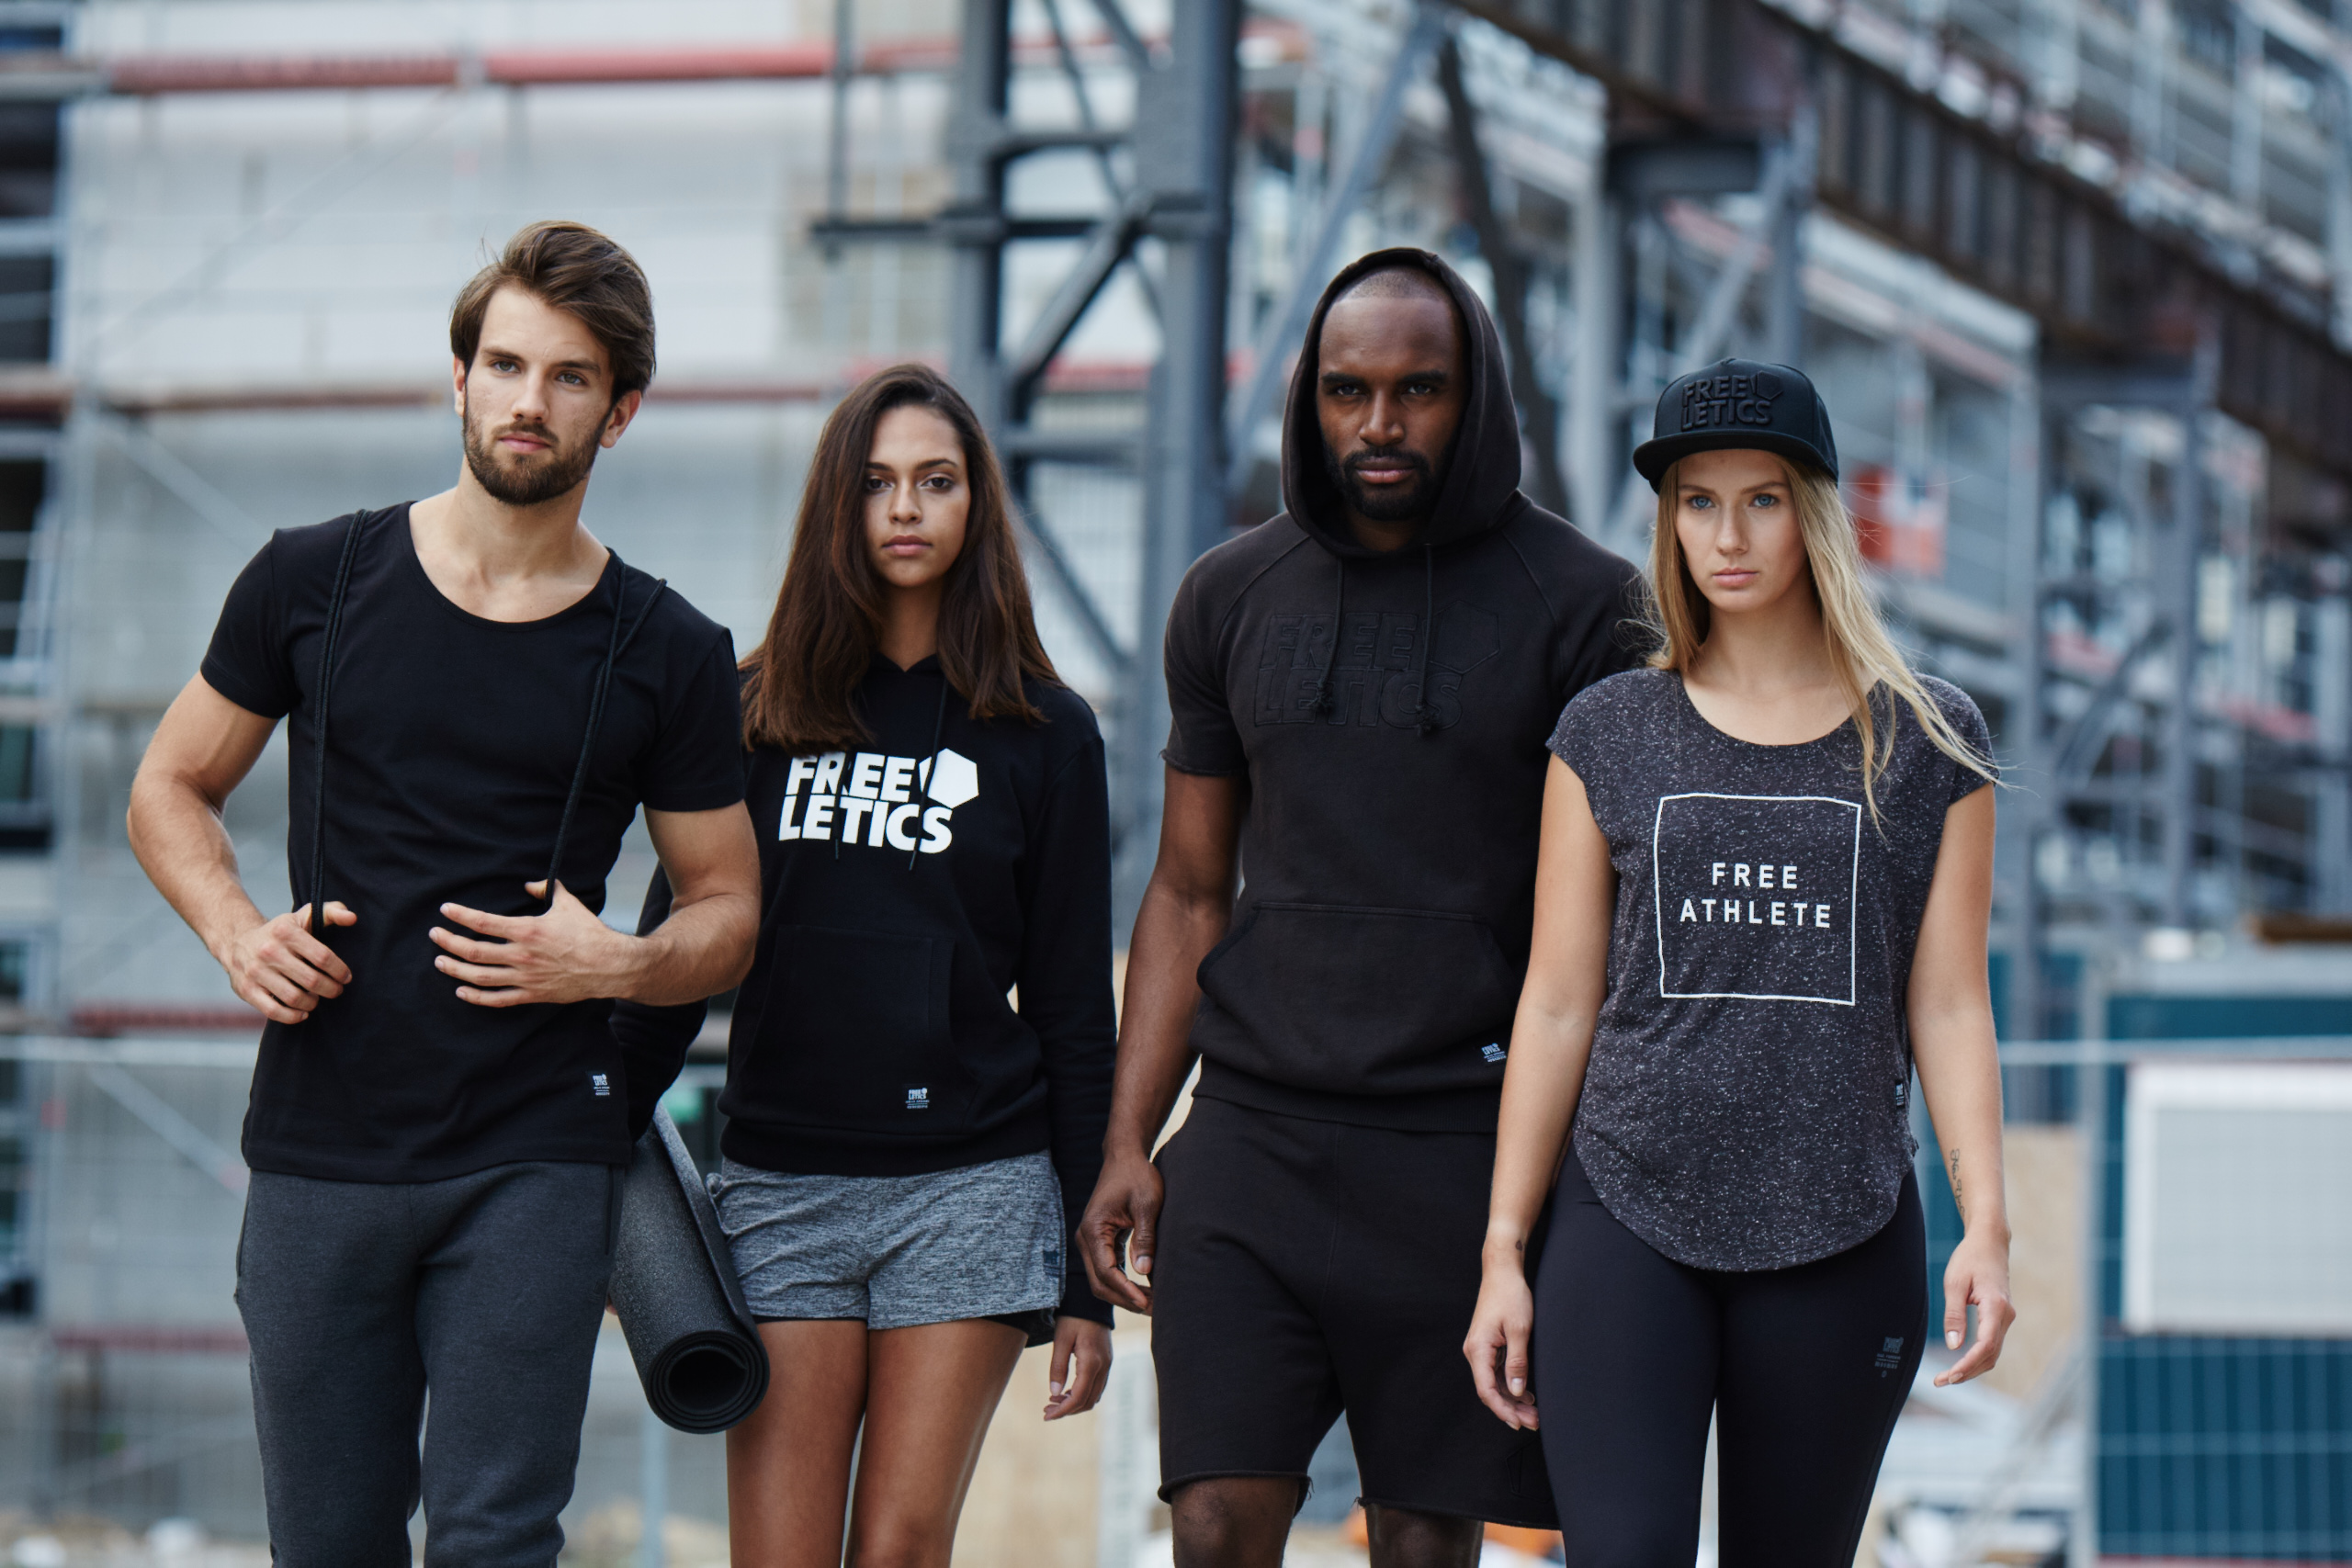 freeletics sports clothing campaign